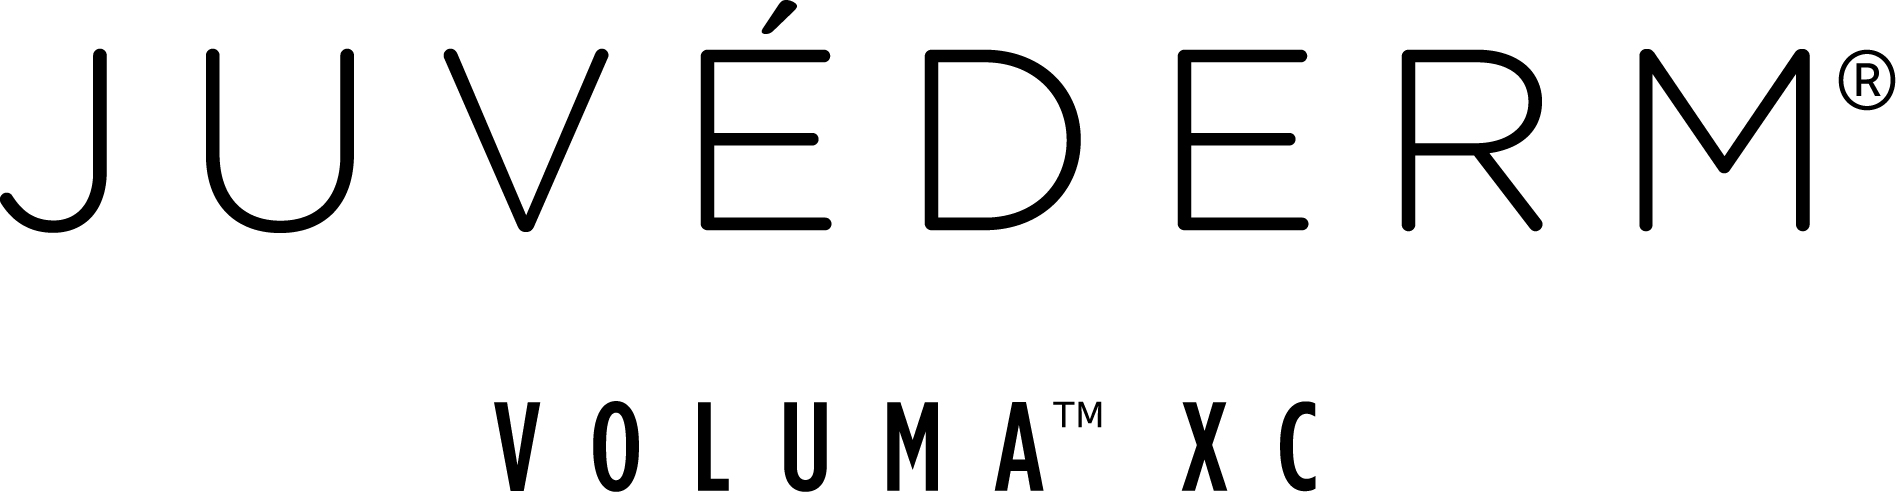 New Juvederm Voluma XC logo